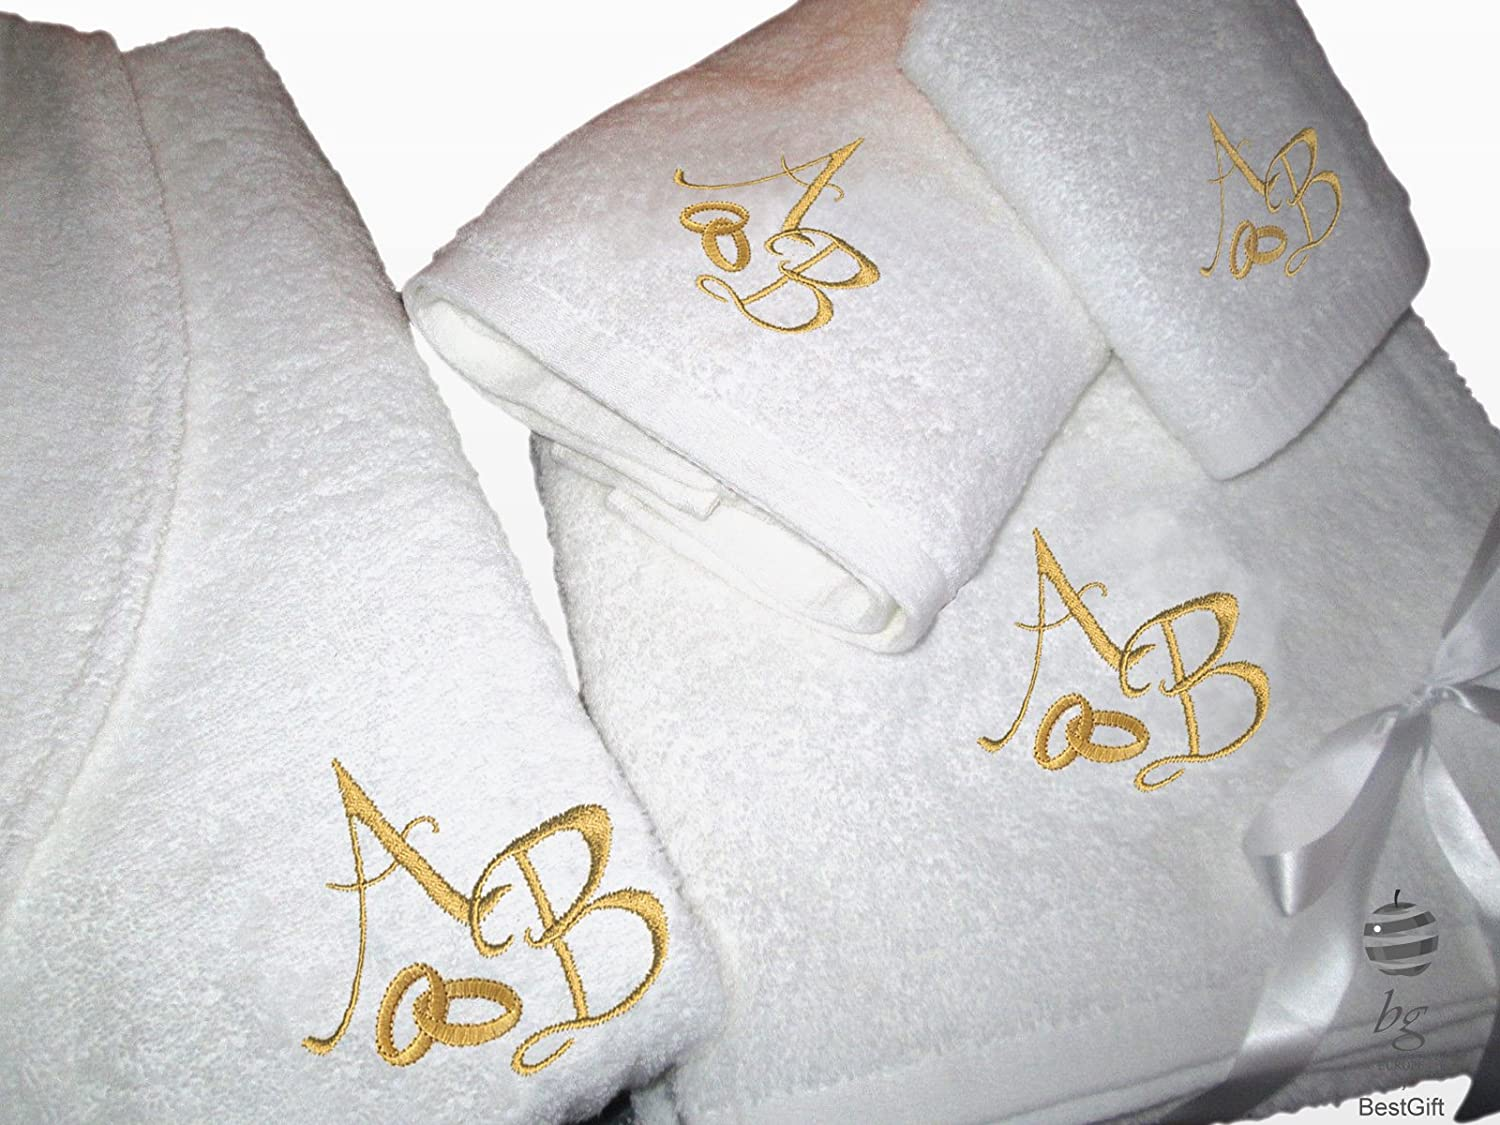 Amazon.com: BgEurope 5 Stars Personalized Wedding Gift Anniversary Set - Bathrobe and Bath Towels with Gold Embroidery (XL): Home & Kitchen